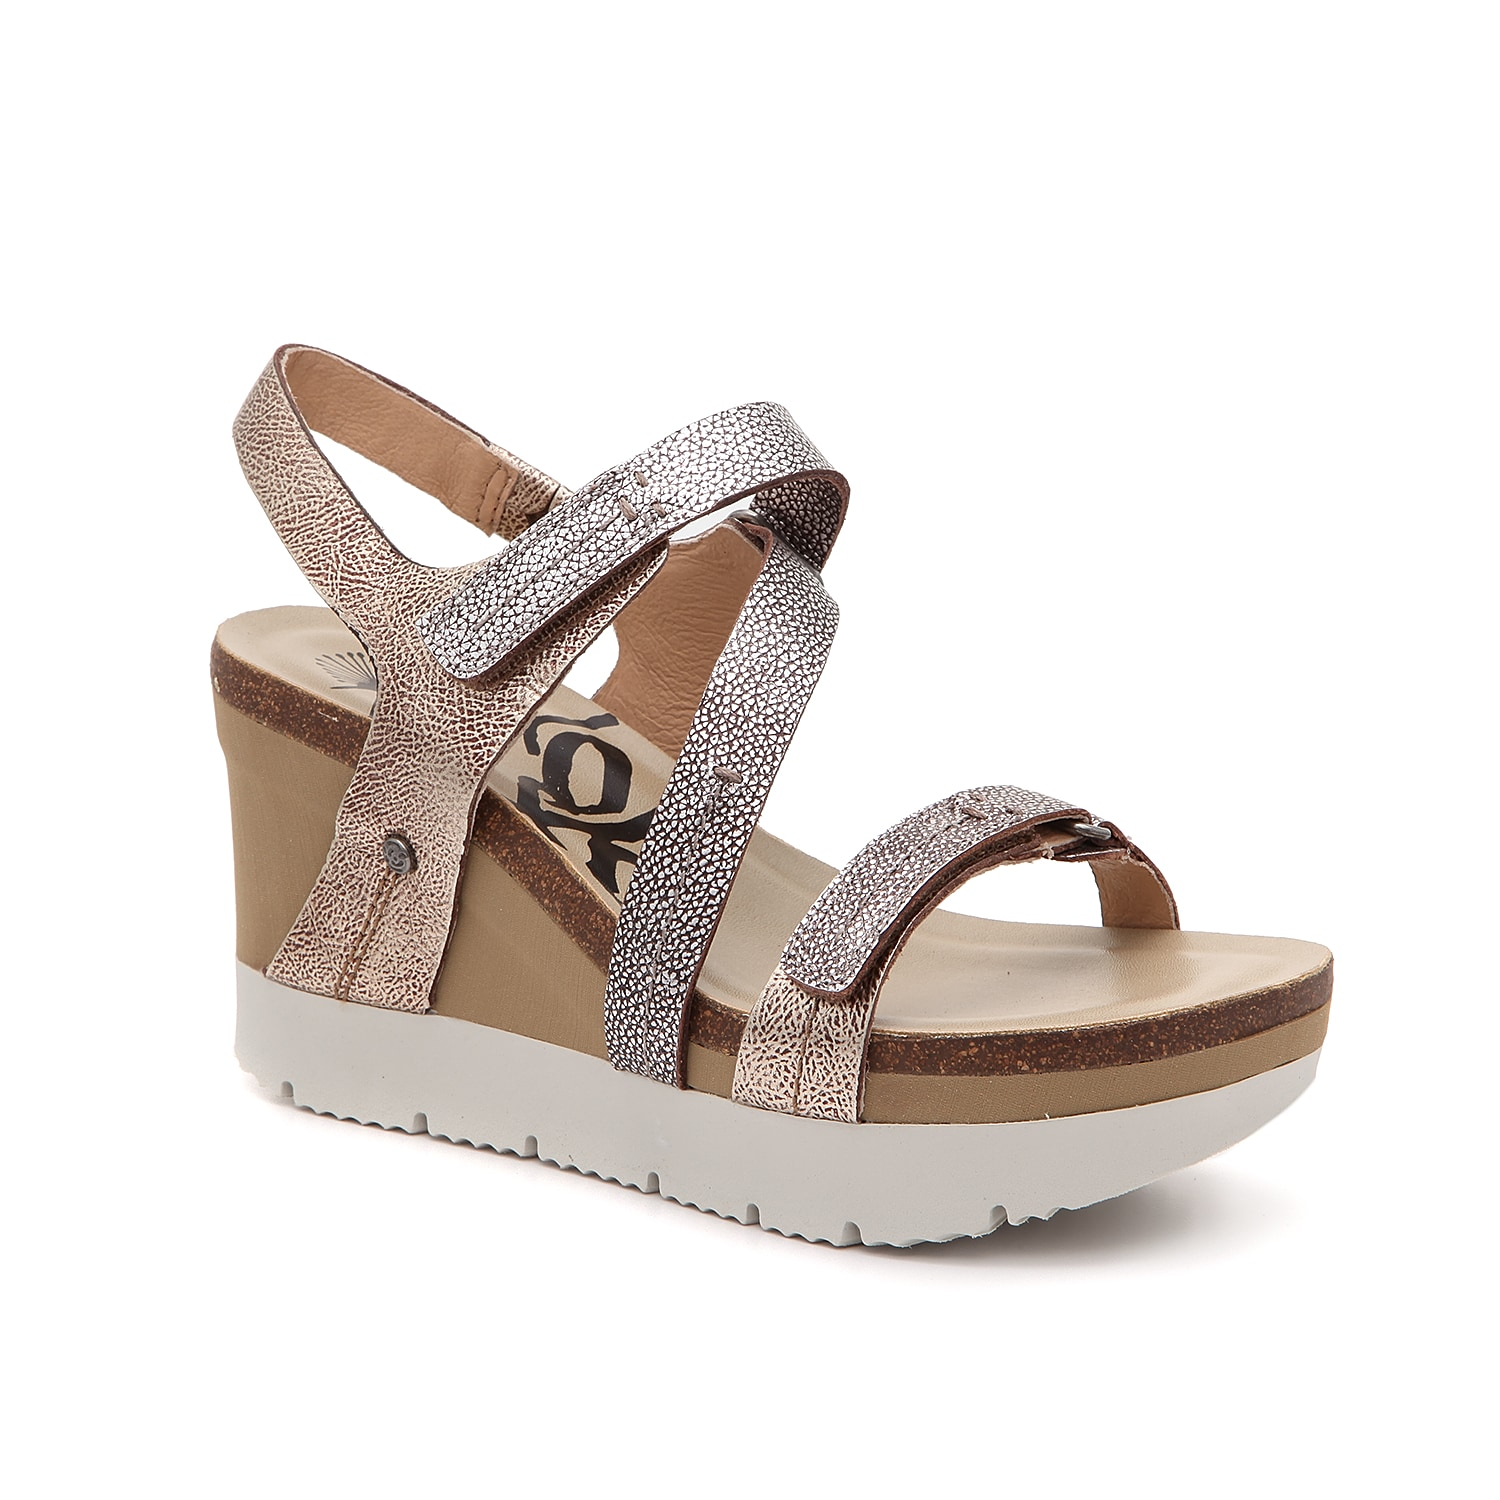 Take your look to a new level with the Wavey sandal from Otbt. These wedges feature smooth leather straps and a cushioned footbed to give optimal support all day.